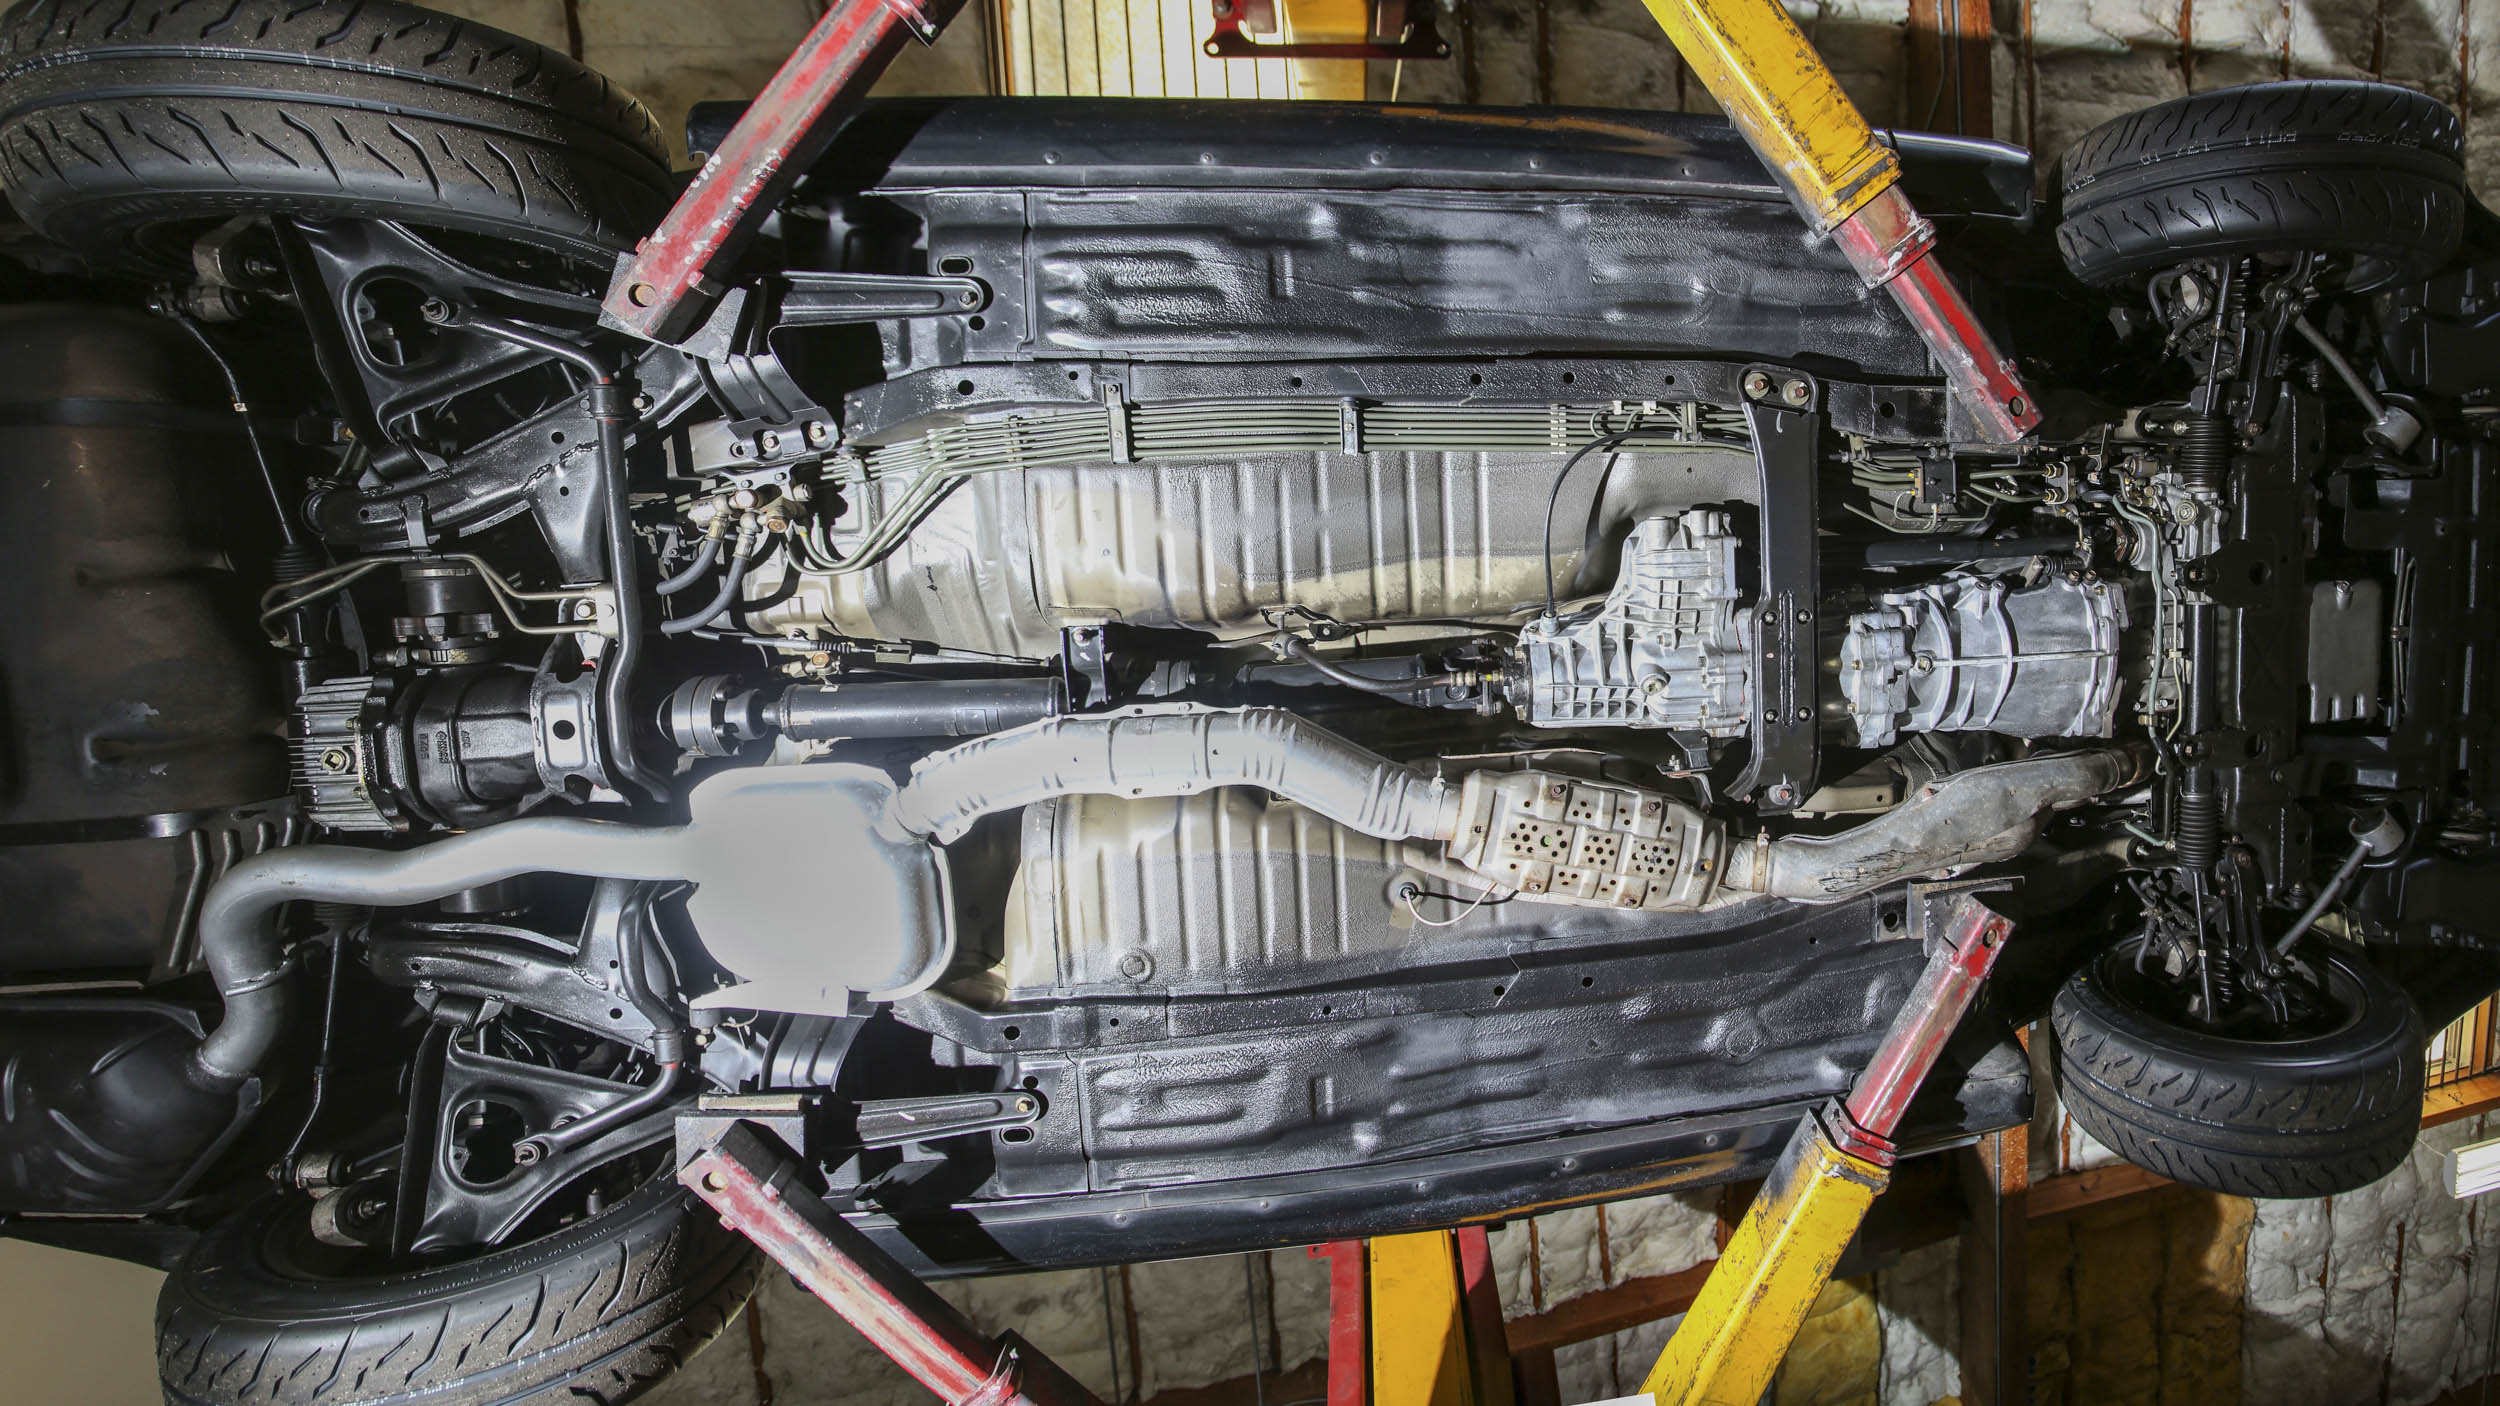 Nissan R32 GT-R undercarriage